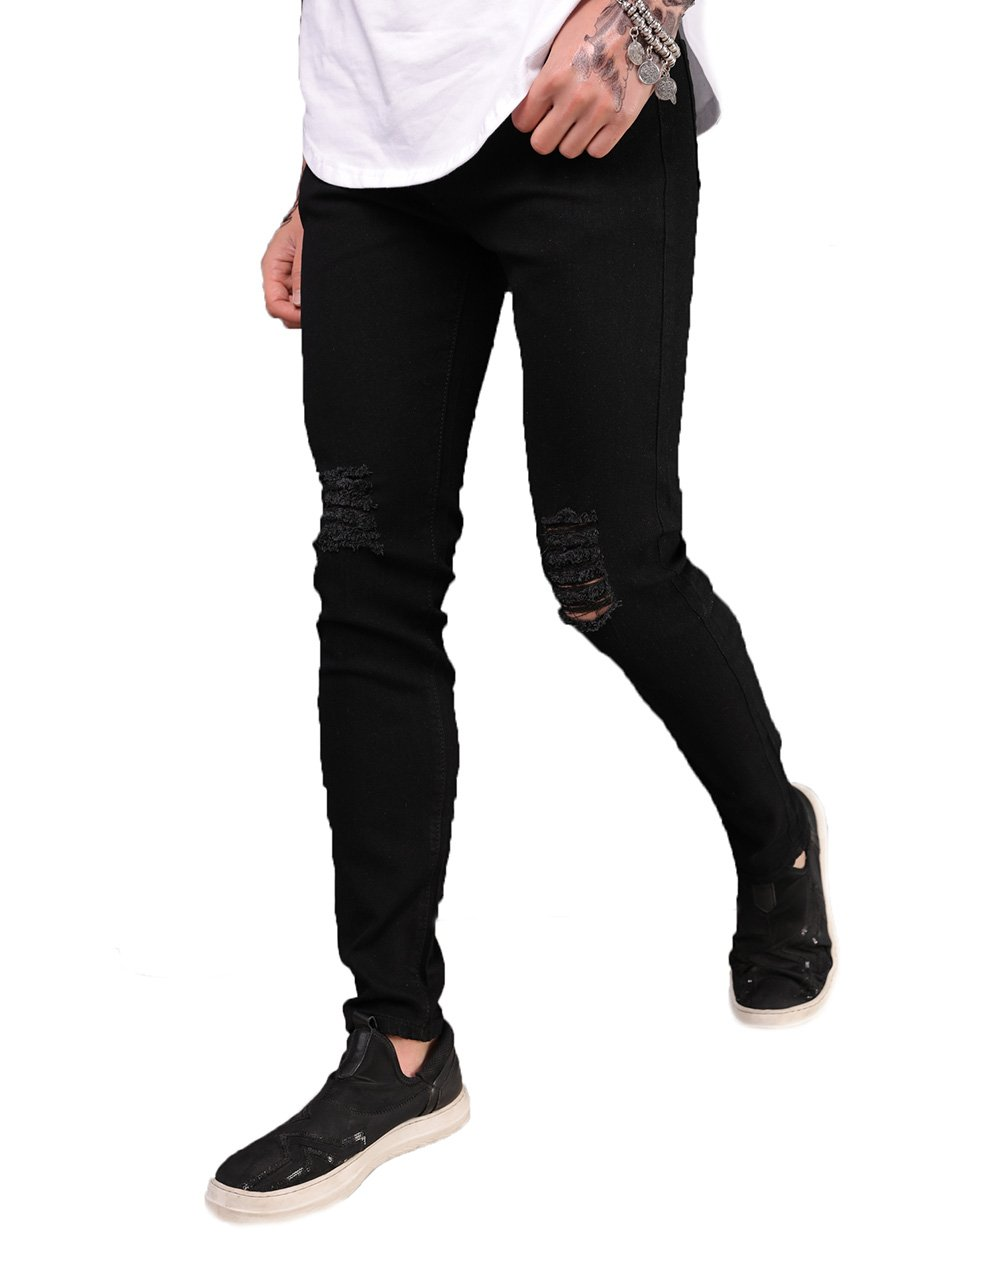 XARAZA Men's Ripped Distressed Skinny Summer Jeans Stretchy Slim Fit Pencil Pants (US 35, Black)